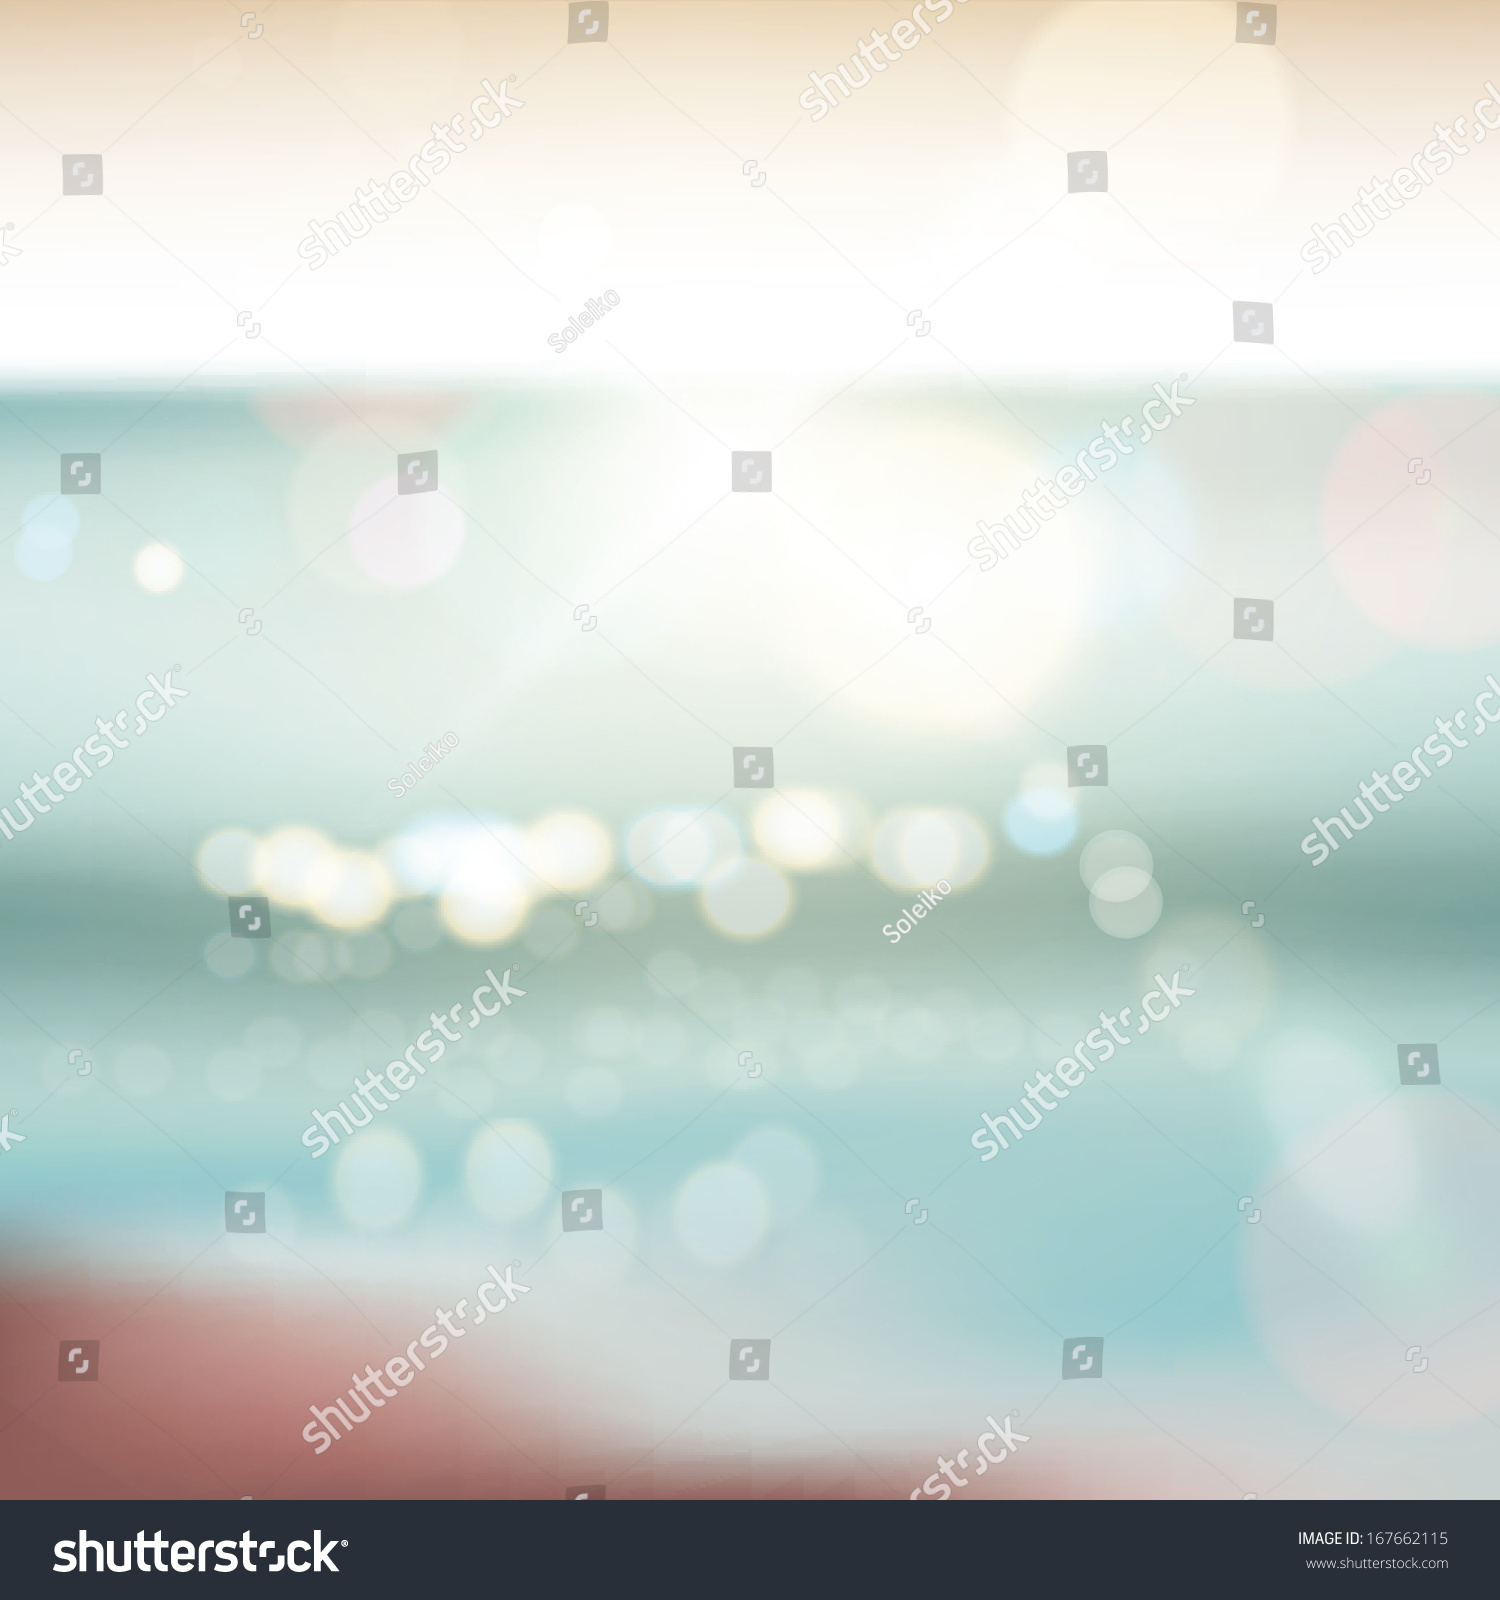 Background Of Blurred Beach And Sea Waves With Bokeh: Abstract Ocean Seascape Blurred Background Stock Vector